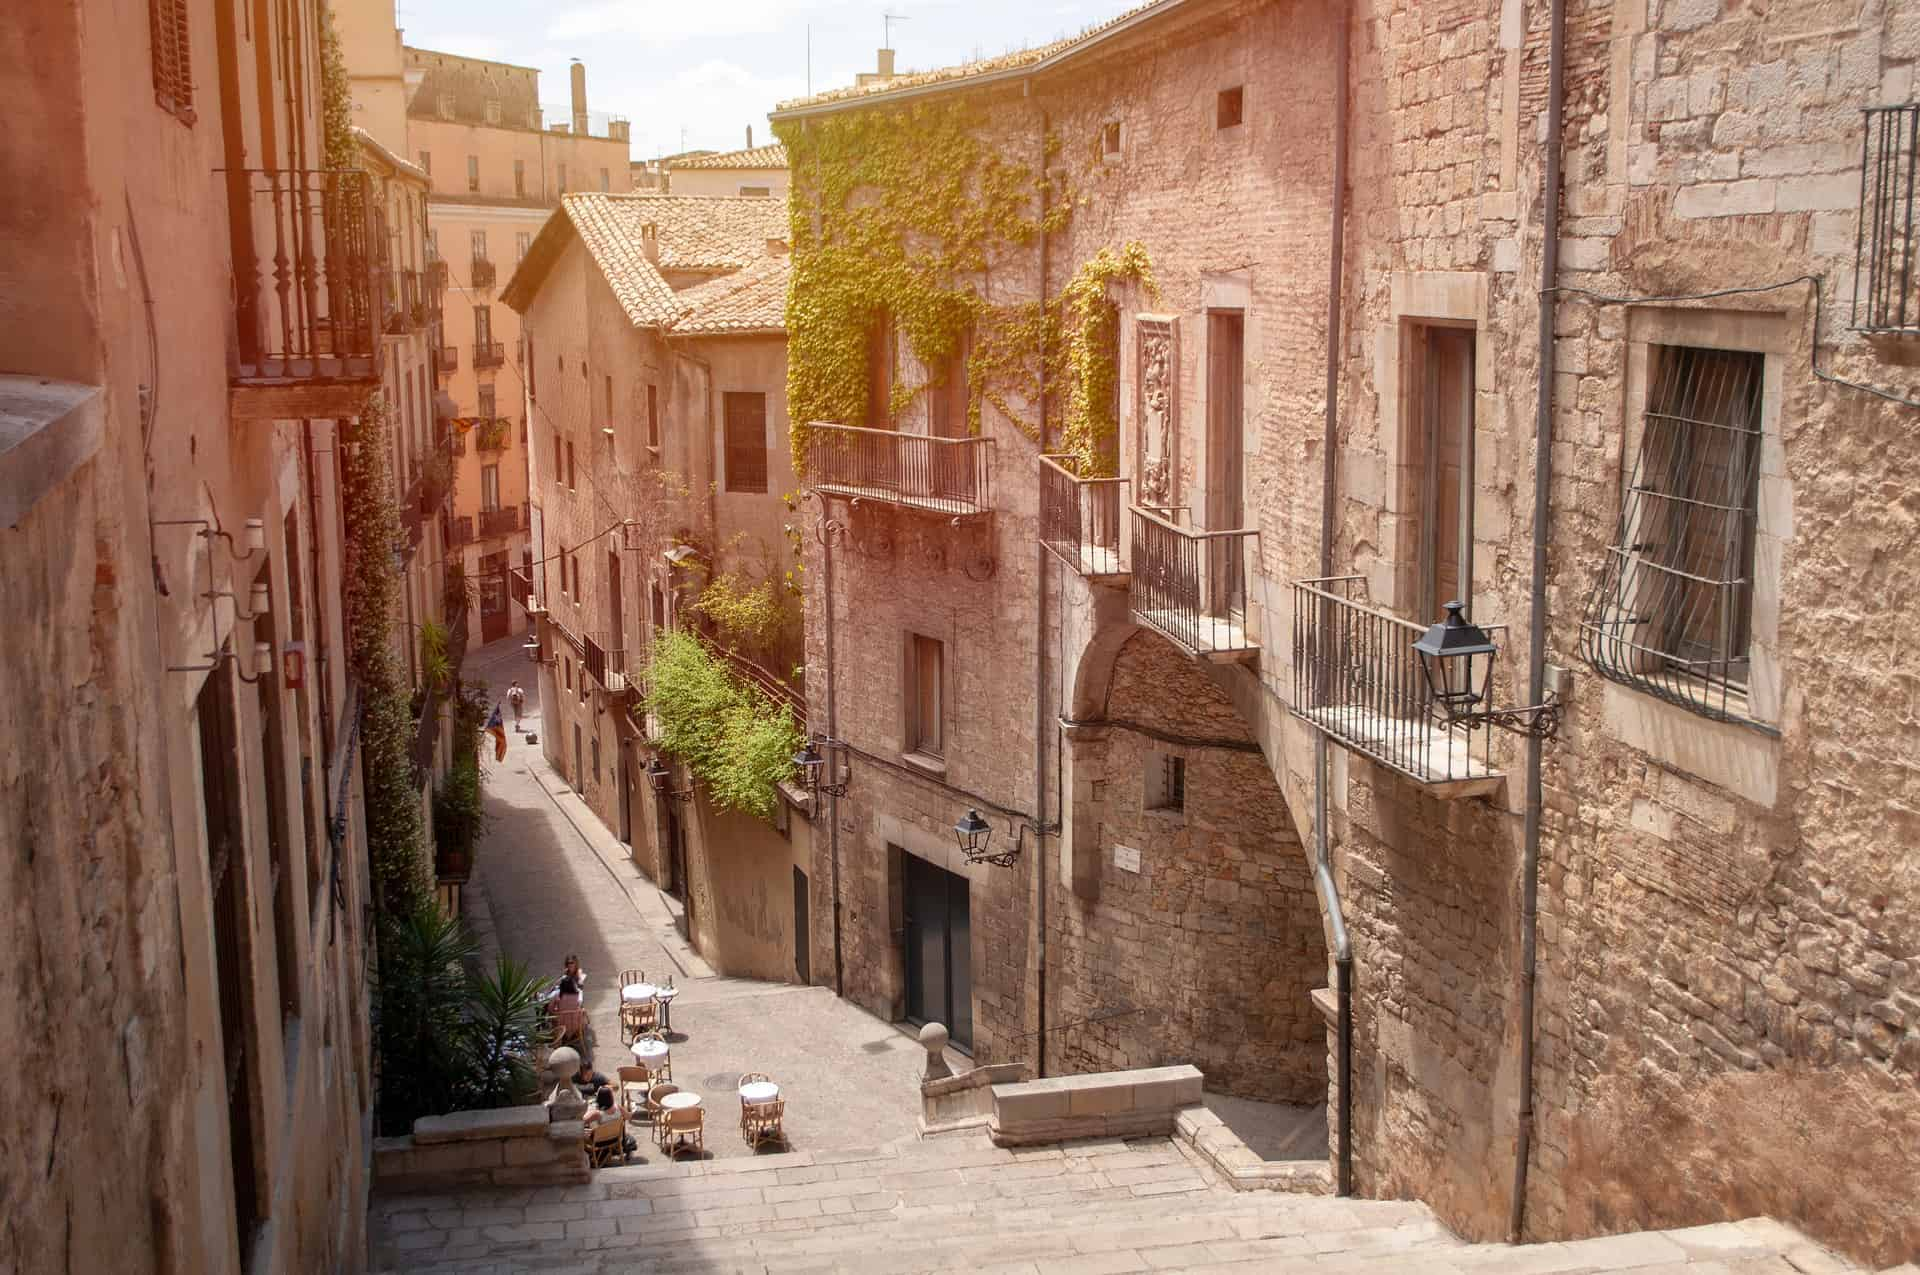 Day 13: Girona and Begur